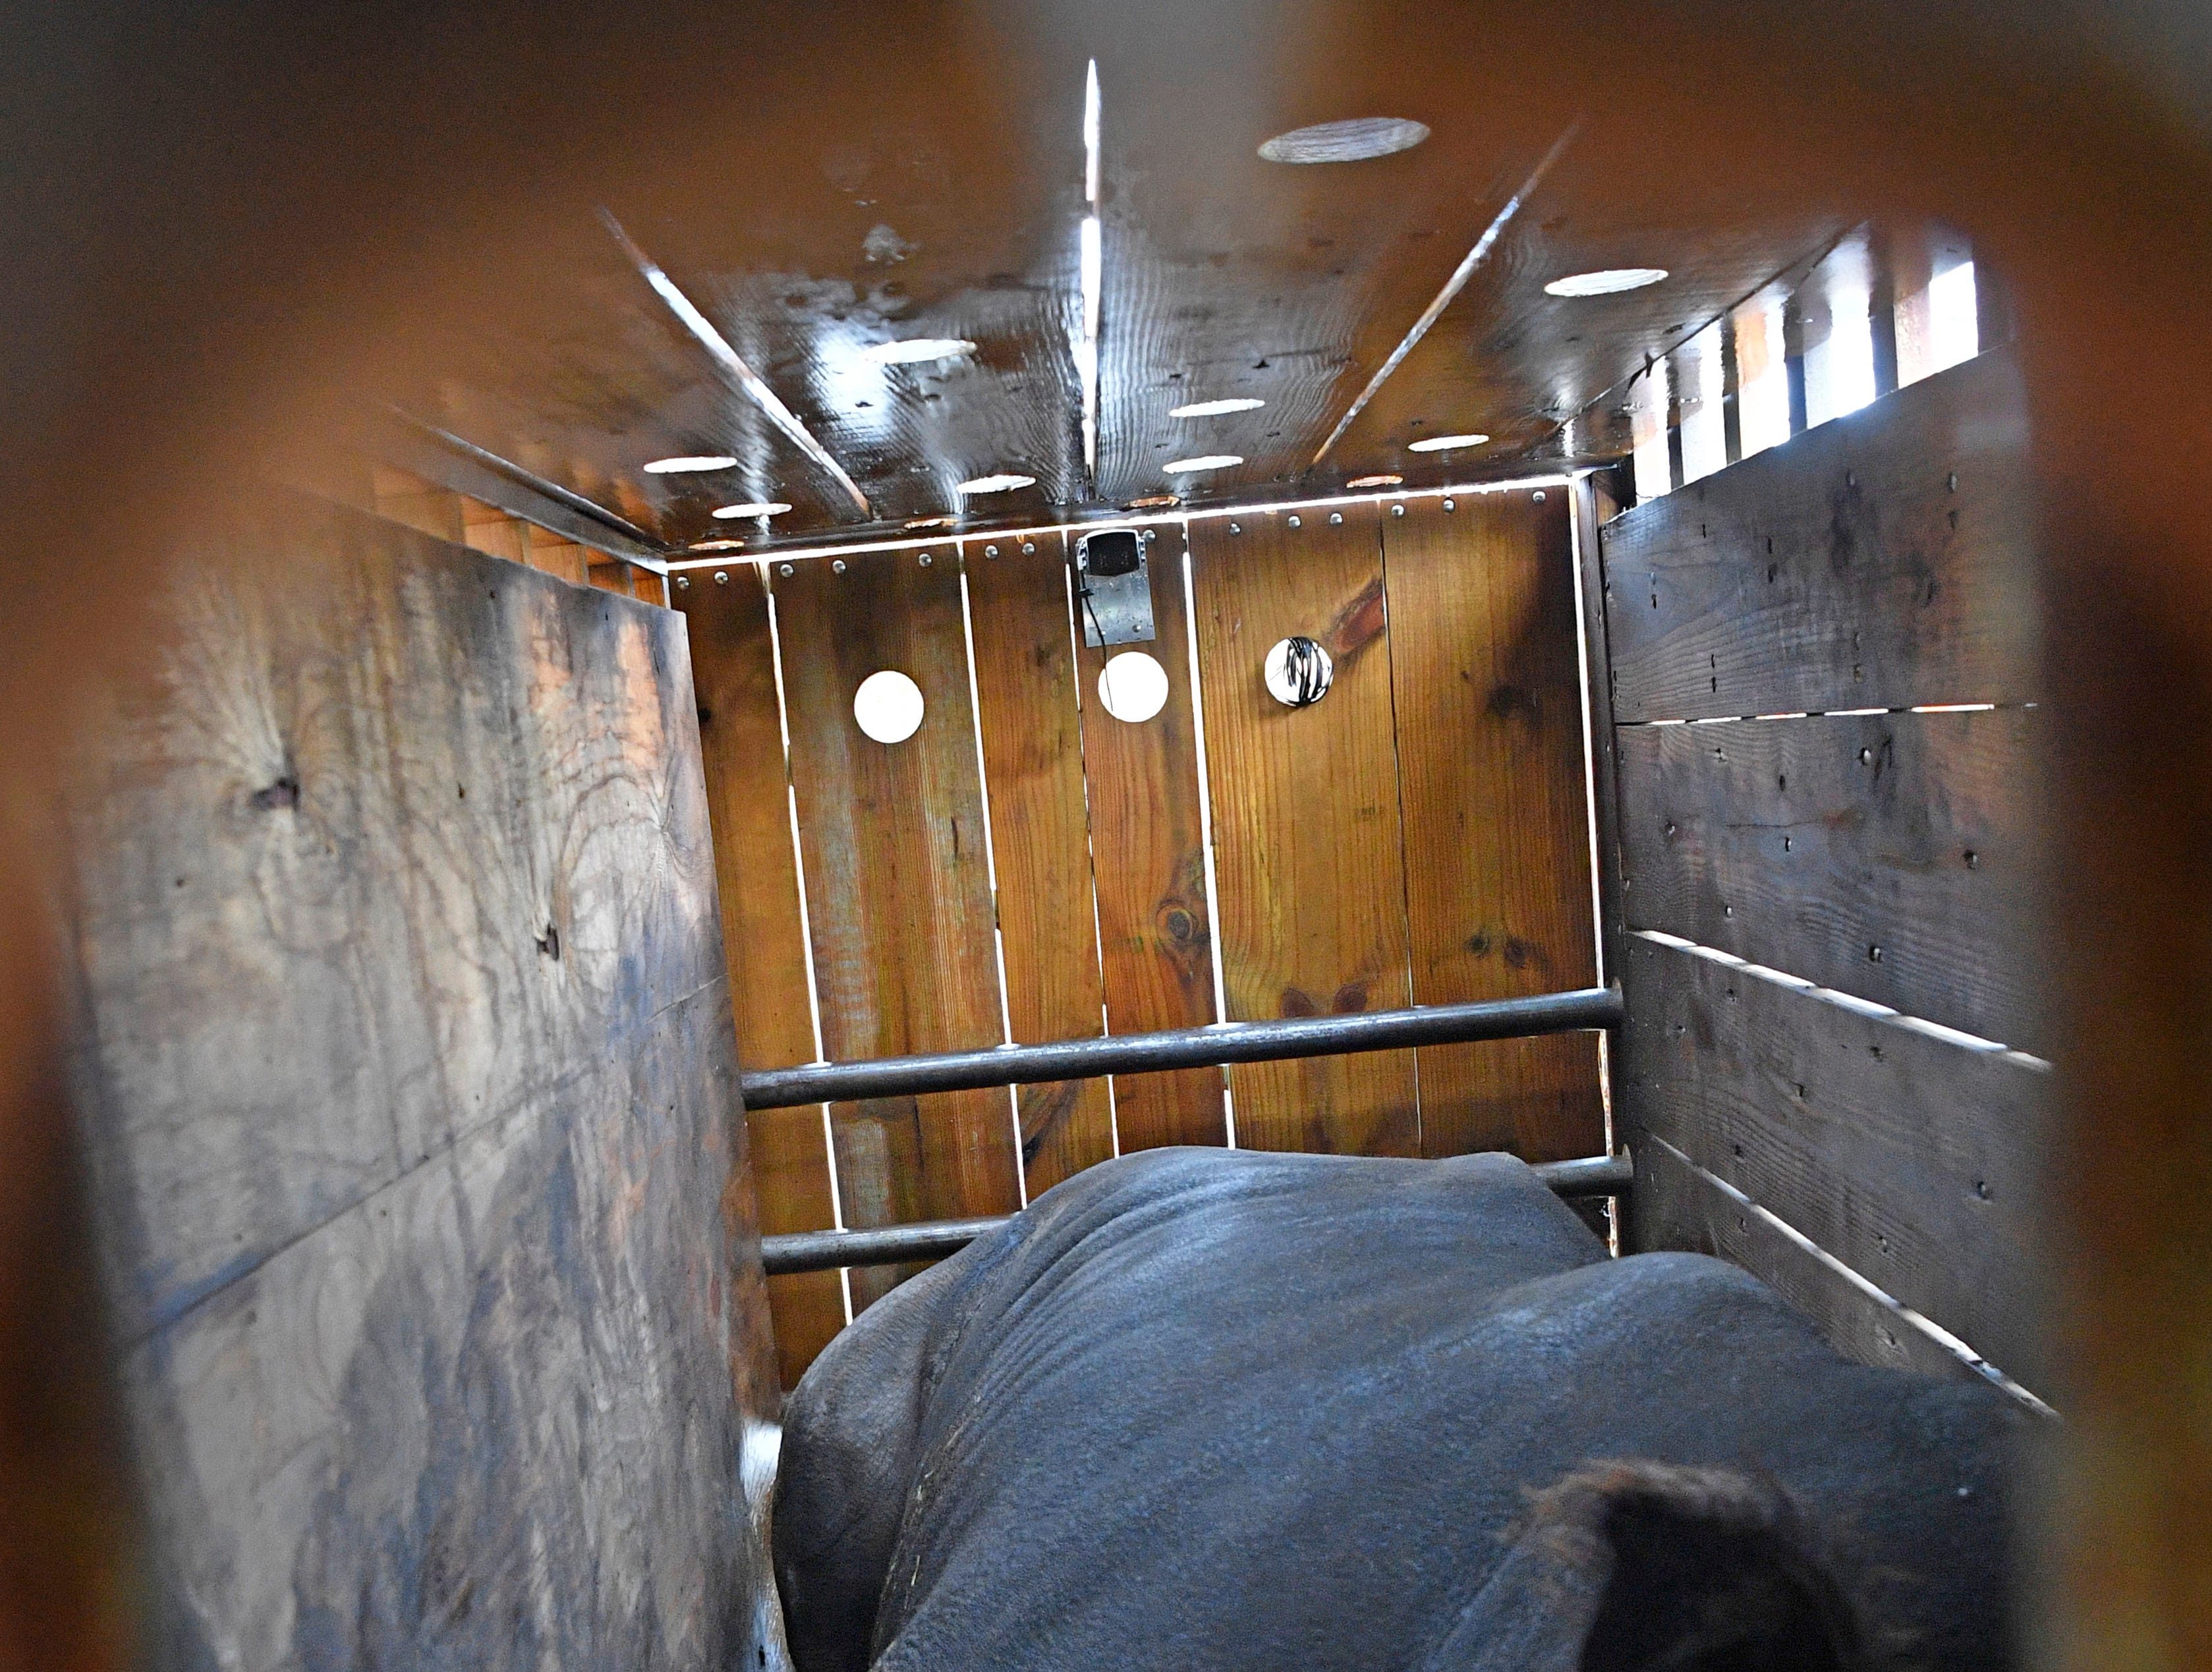 Looking thru an observation hole in a transportation crate a male White Rhino is still sedated after a long ride from Florida to join with four female rhinos already at the Nashville Zoo Saturday Dec. 1, 2018, in Nashville, Tenn.